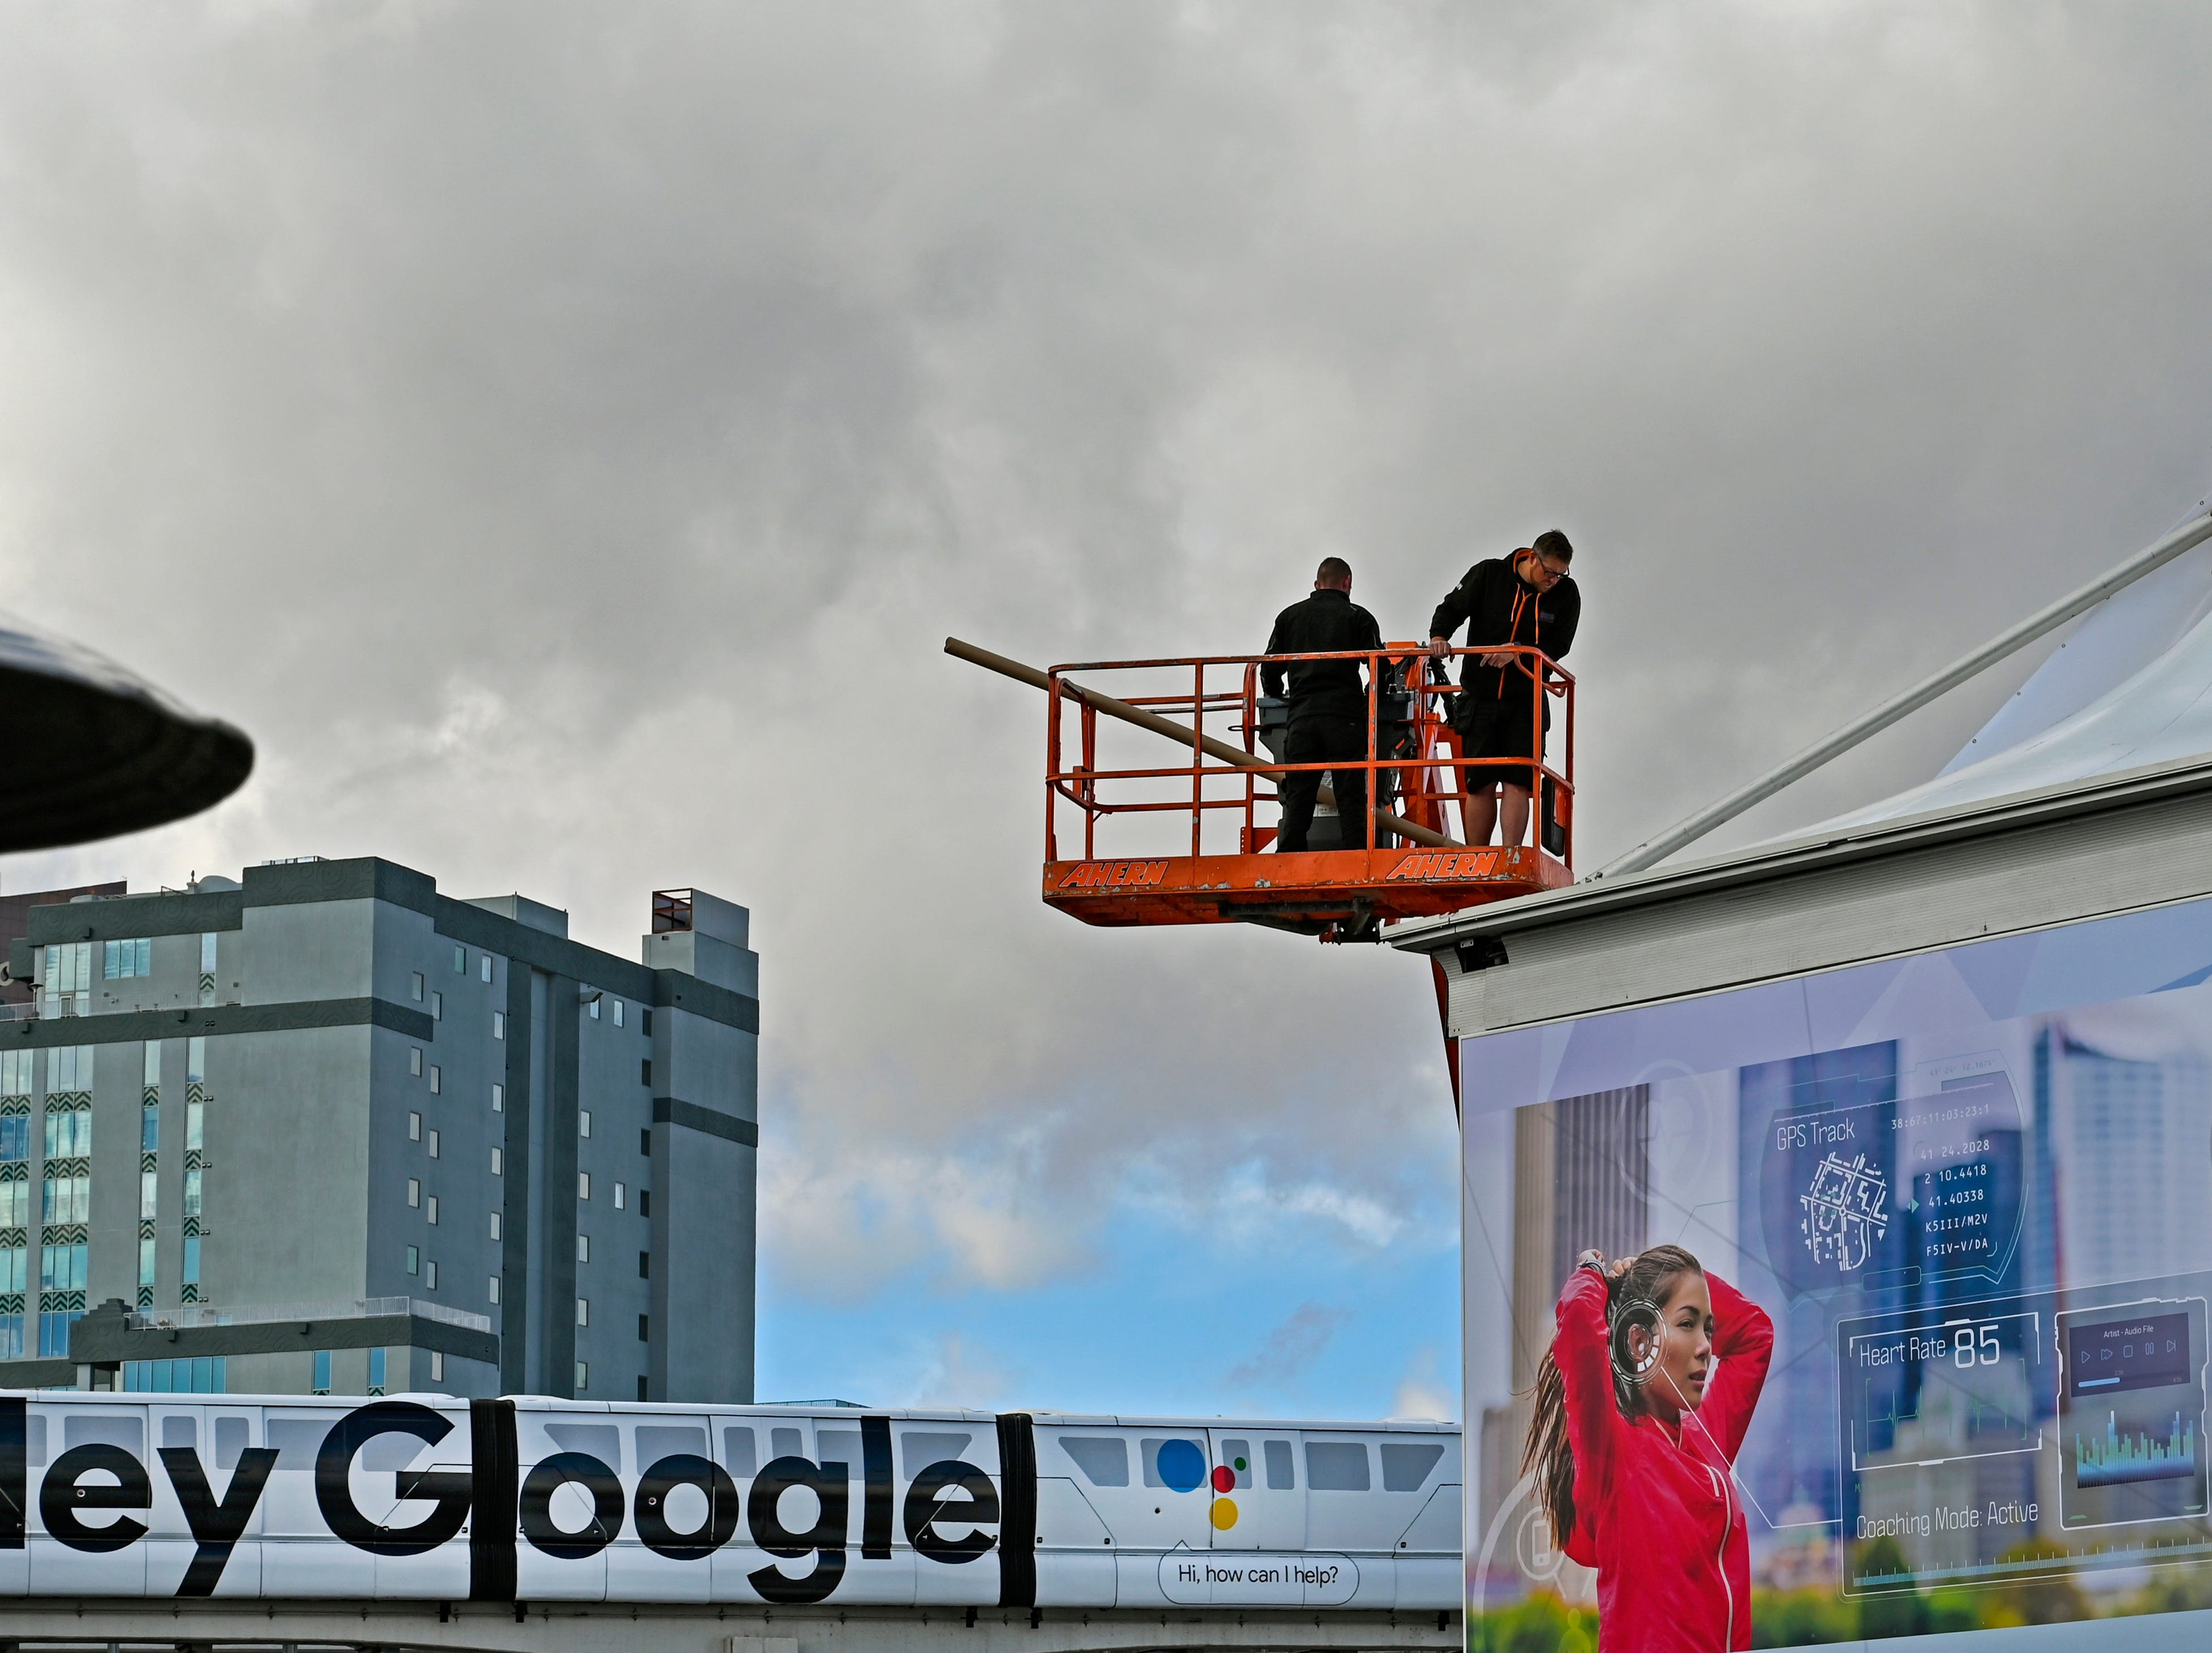 A work crew hangs banners on a large tent outside of the Las Vegas Convention Center as the monorail goes by in the background.